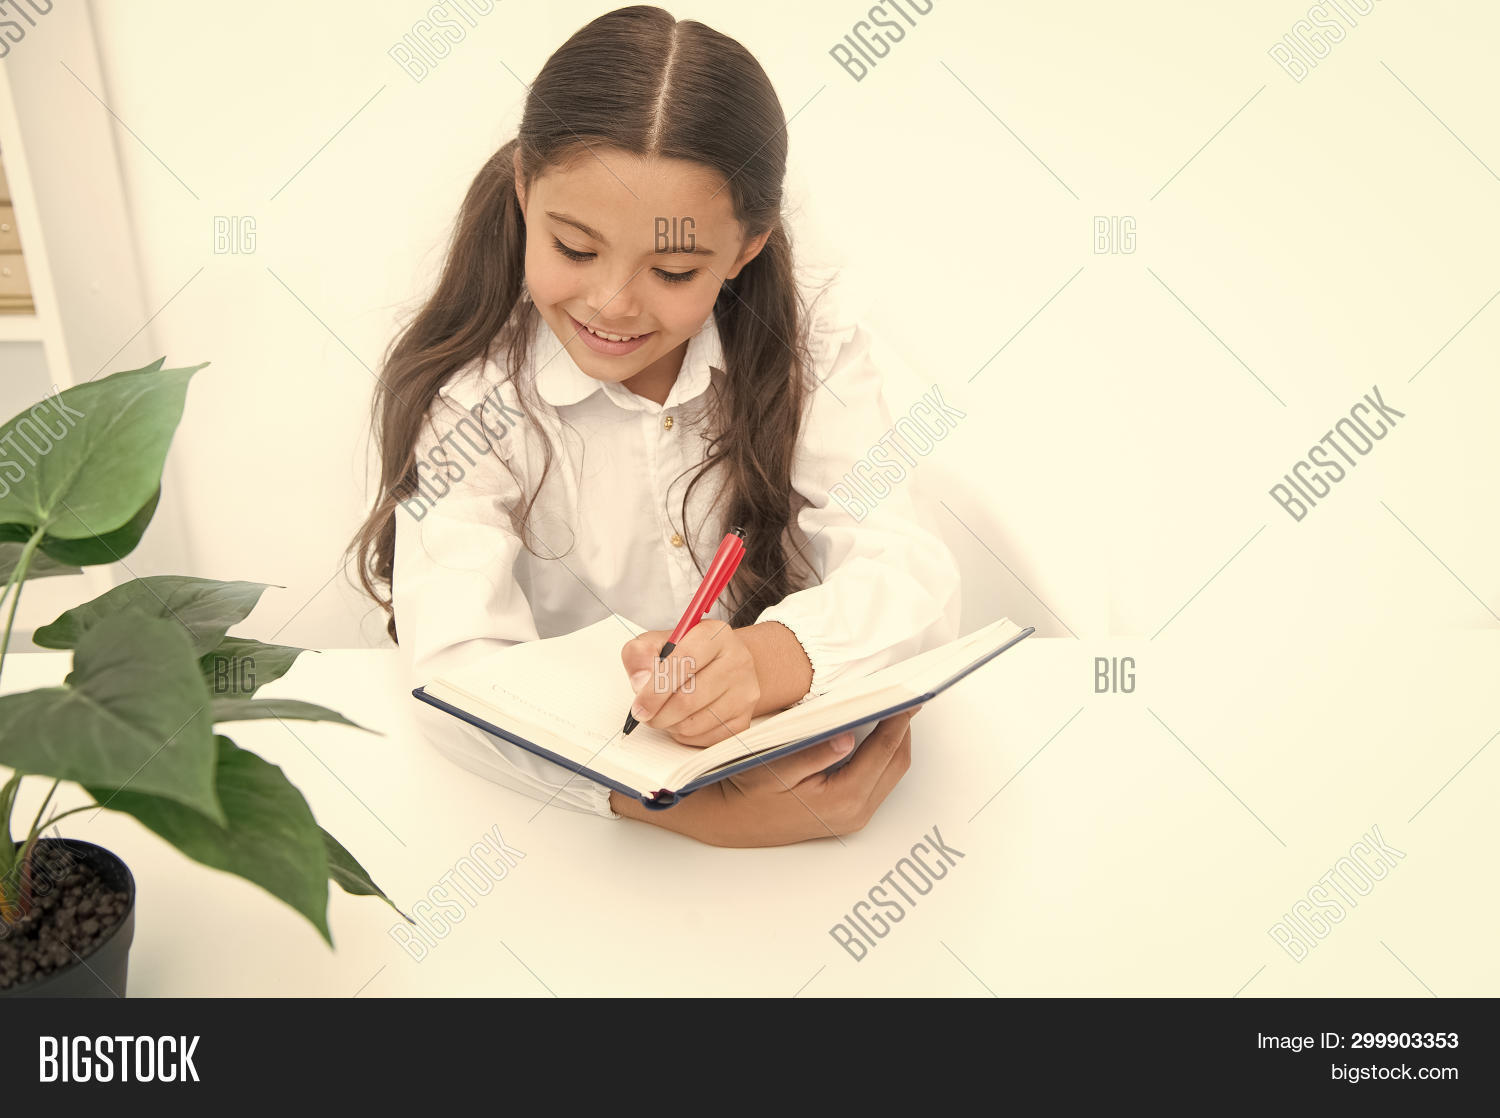 adorable,baby,child,childhood,cute,girl,kid,knowledge,lesson,little,notebook,pen,pupil,school,small,write